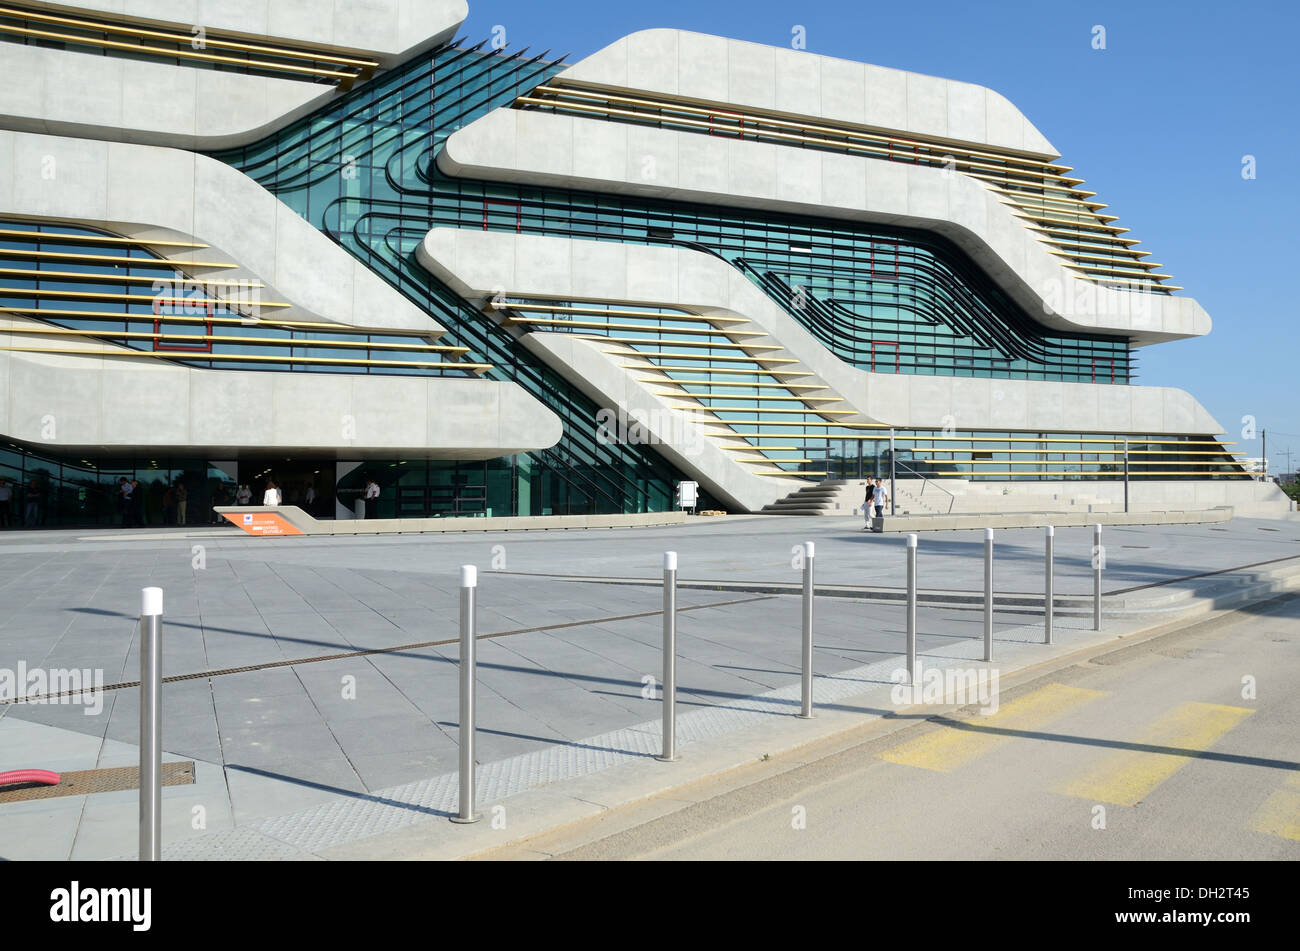 Main Entrance & Facade of Pierresvives Sports Center by Zaha Hadid Montpellier France Stock Photo